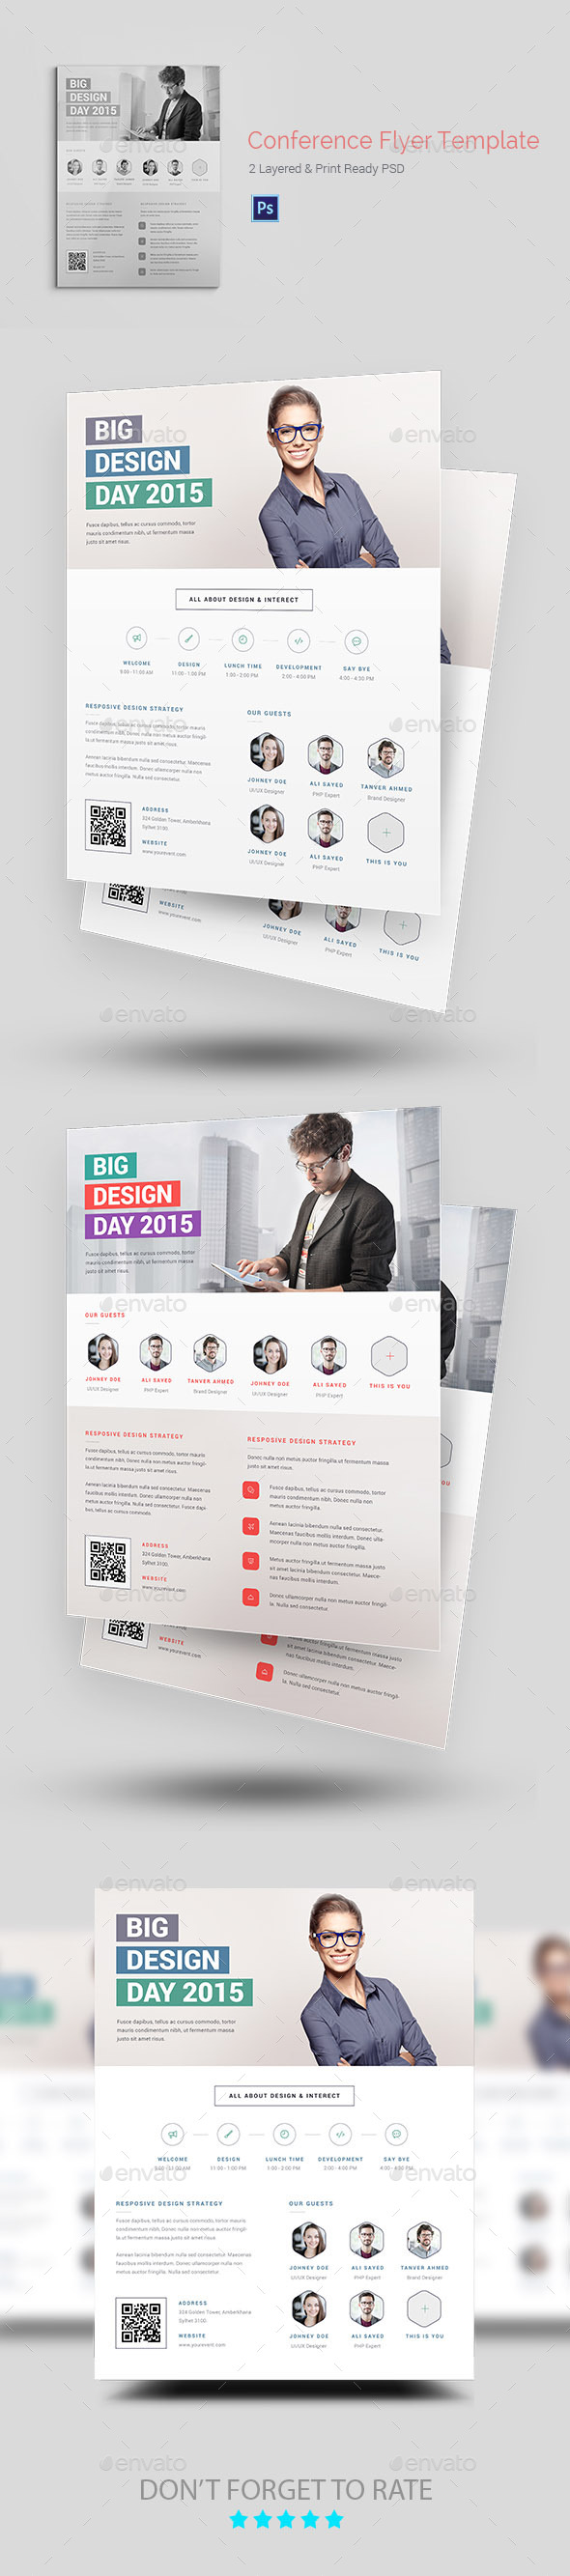 Conference/Event Flyer Templates - Corporate Flyers